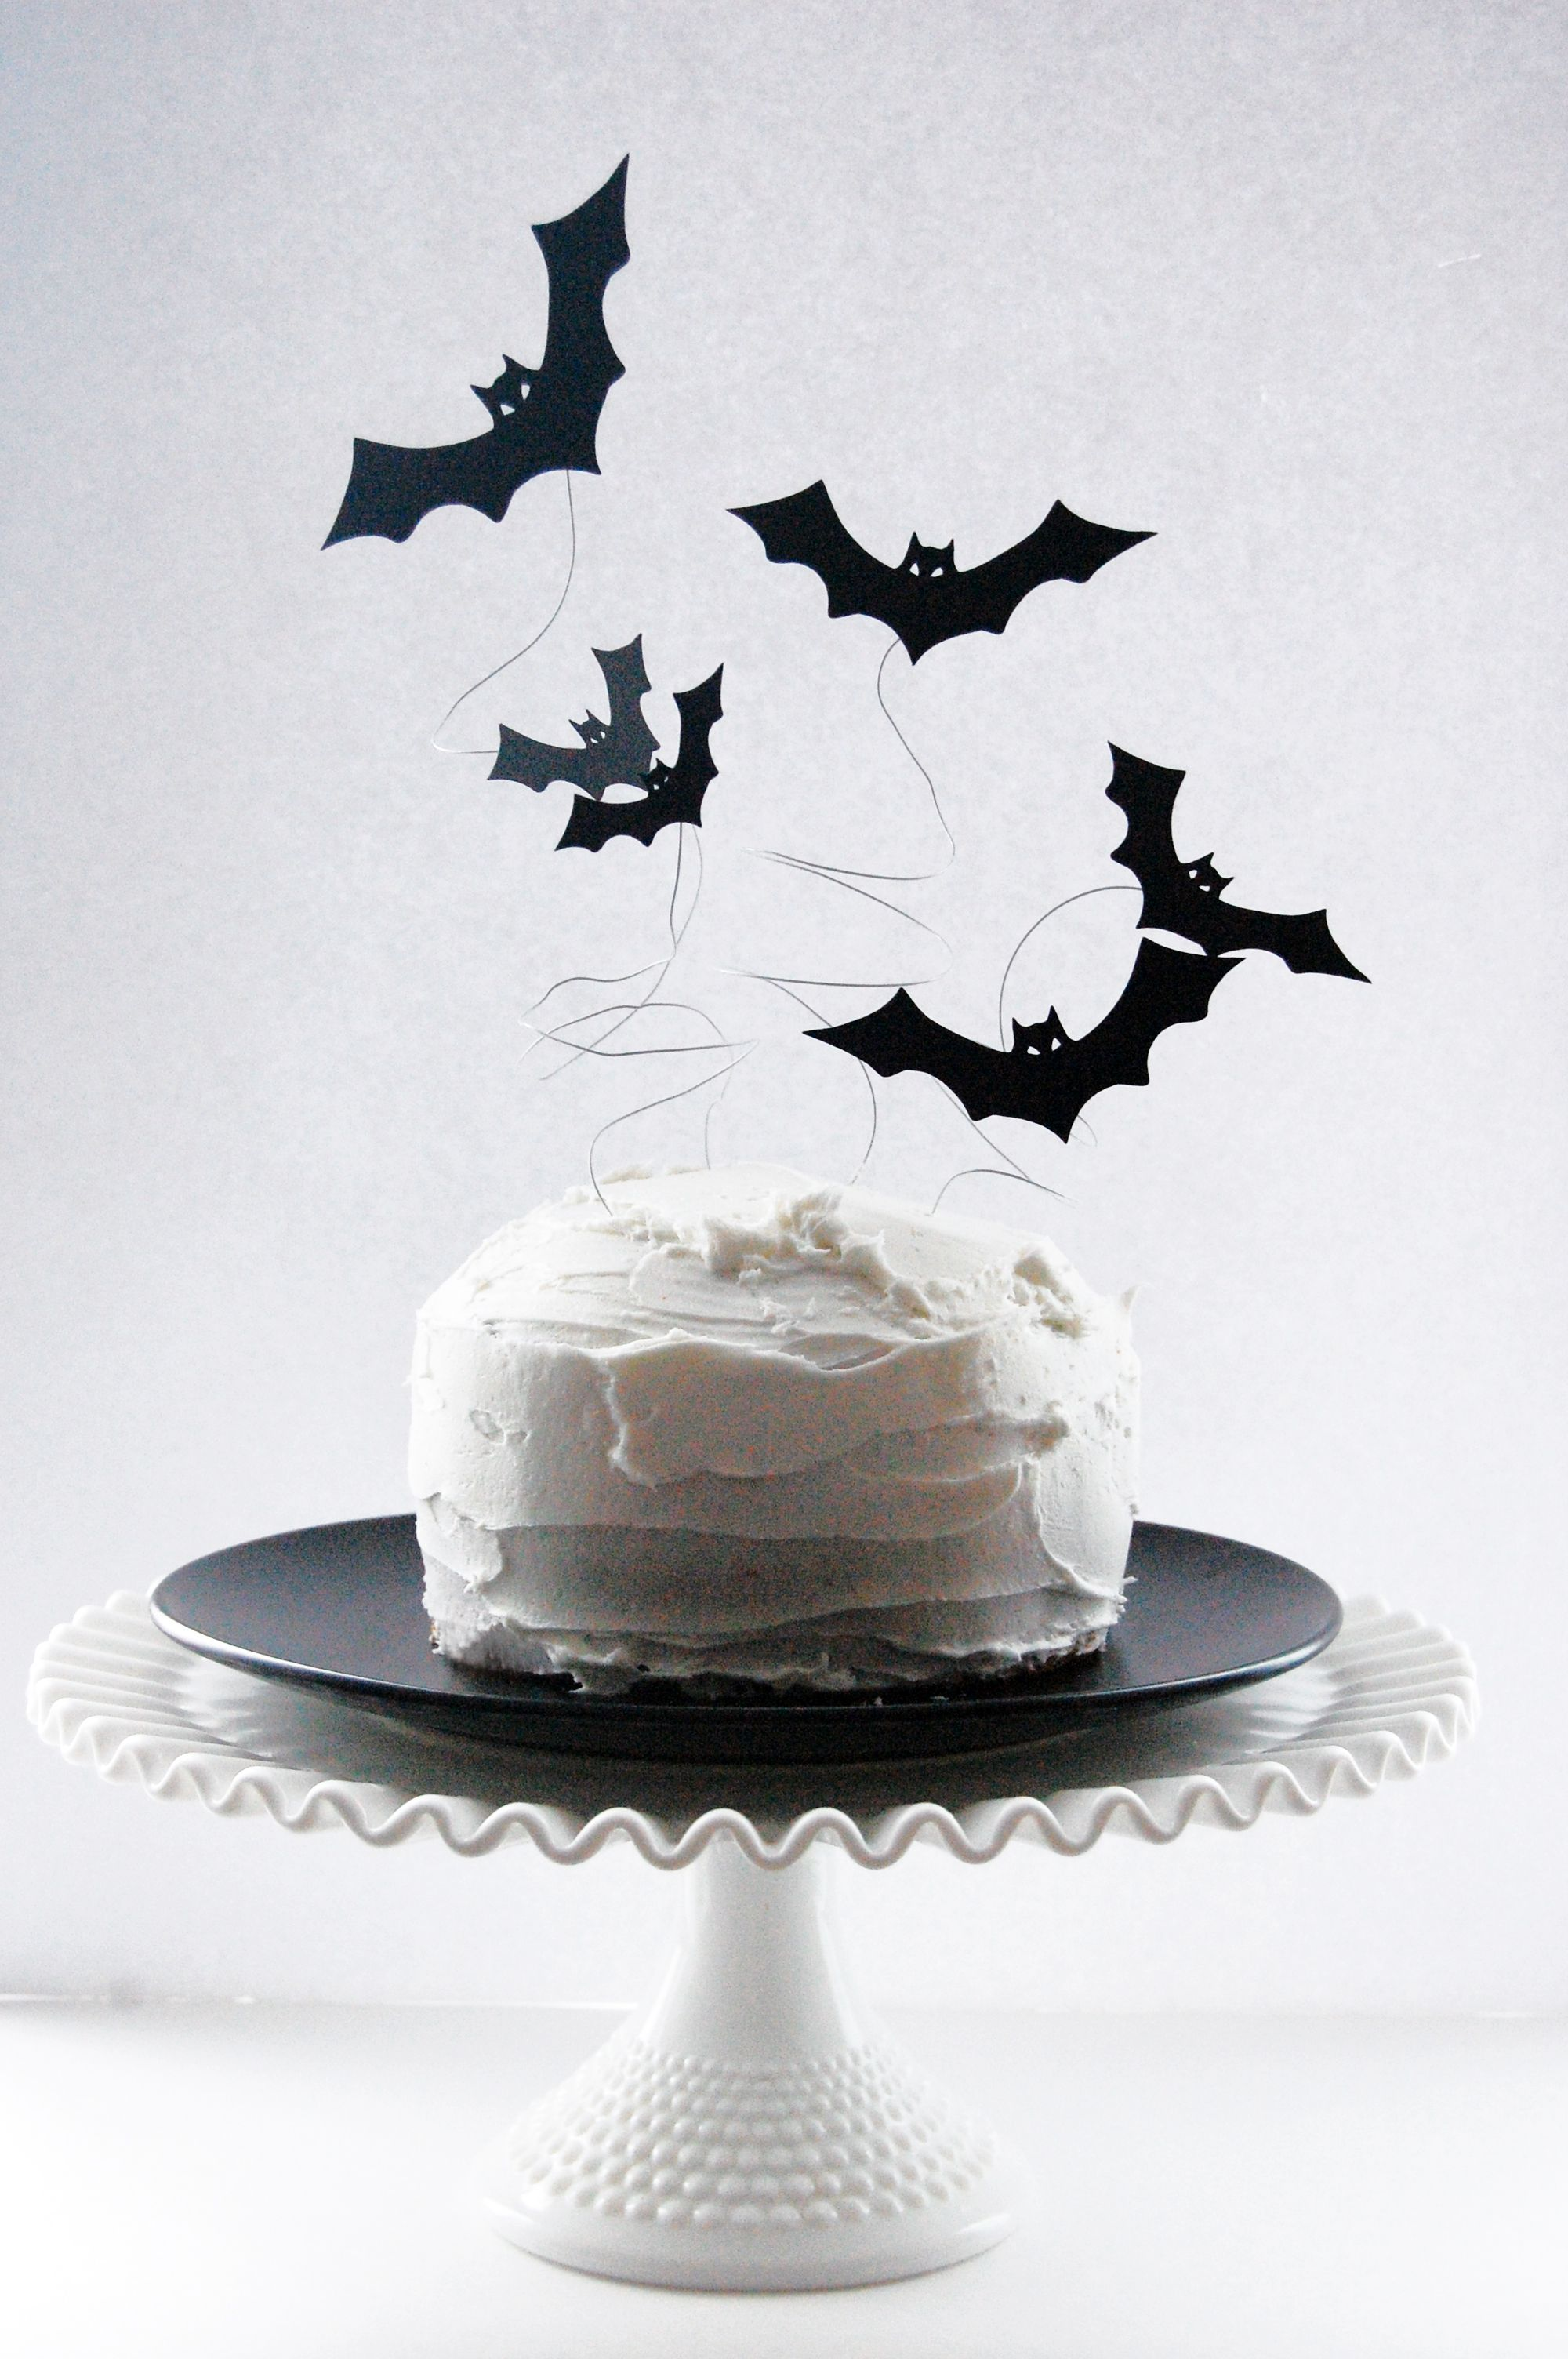 how to make a spooky wire bat cake topper | Pinterest | Bats, Cake ...